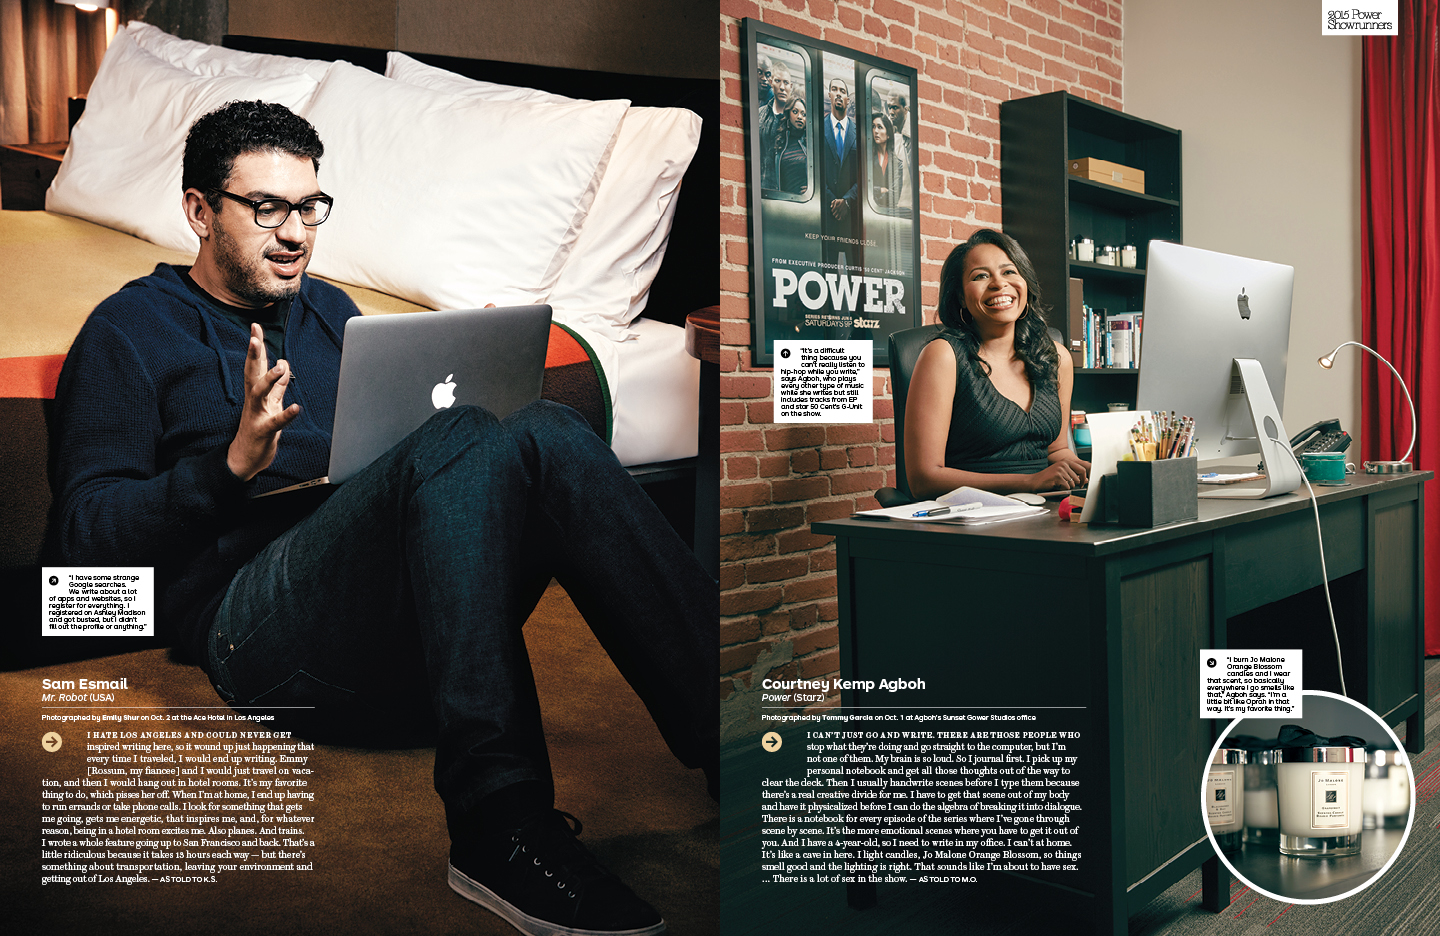 2015 Power Showrunners / The Hollywood Reporter / 10.28.15 / kelsey stefanson / art direction + graphic design / yeskelsey.com